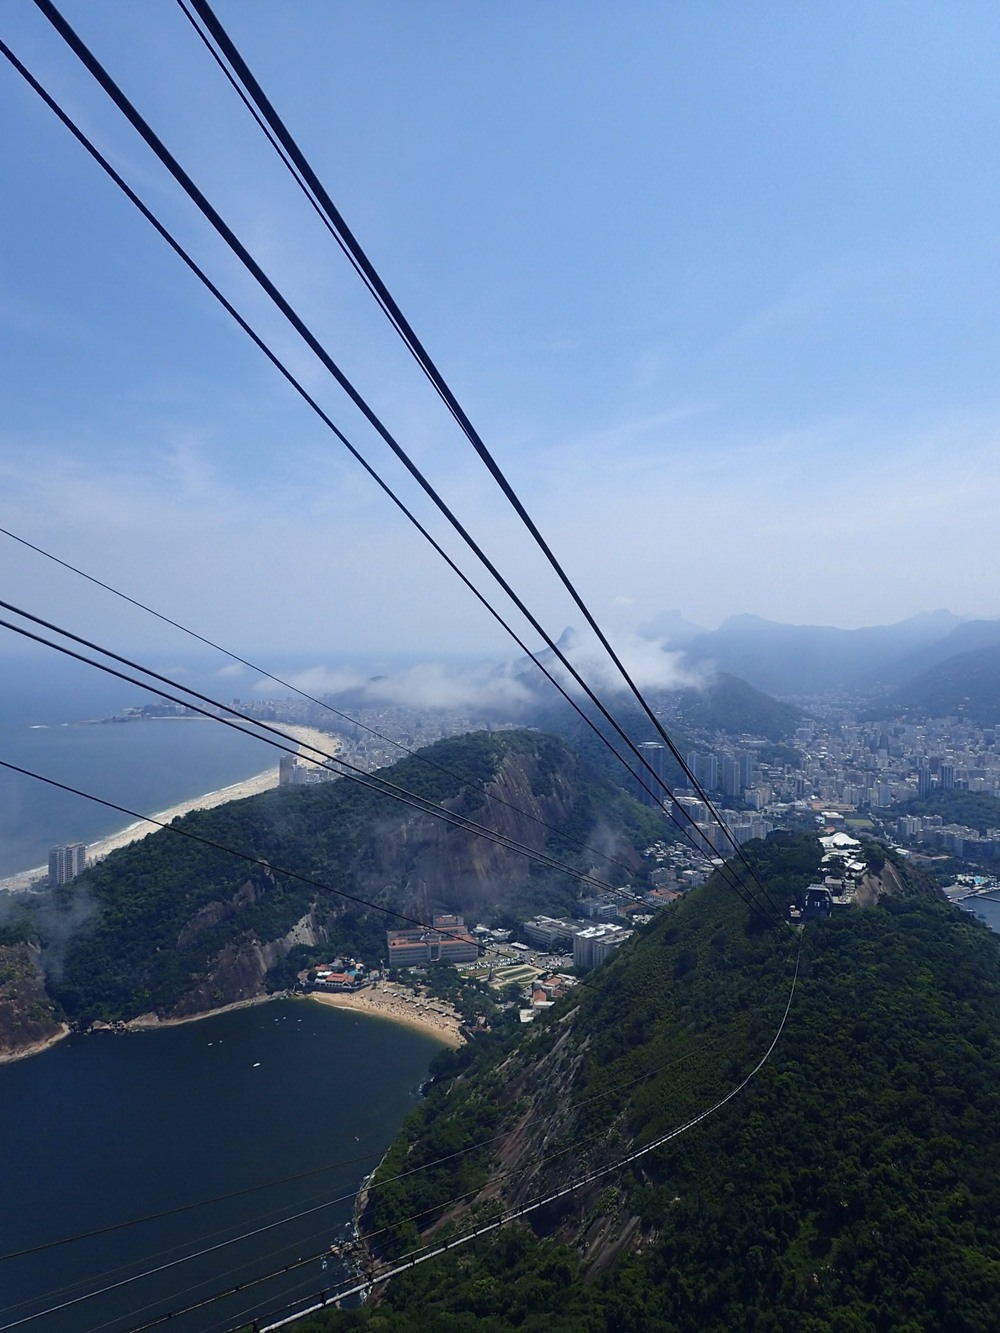 The view from the cable car up to Sugarloaf.